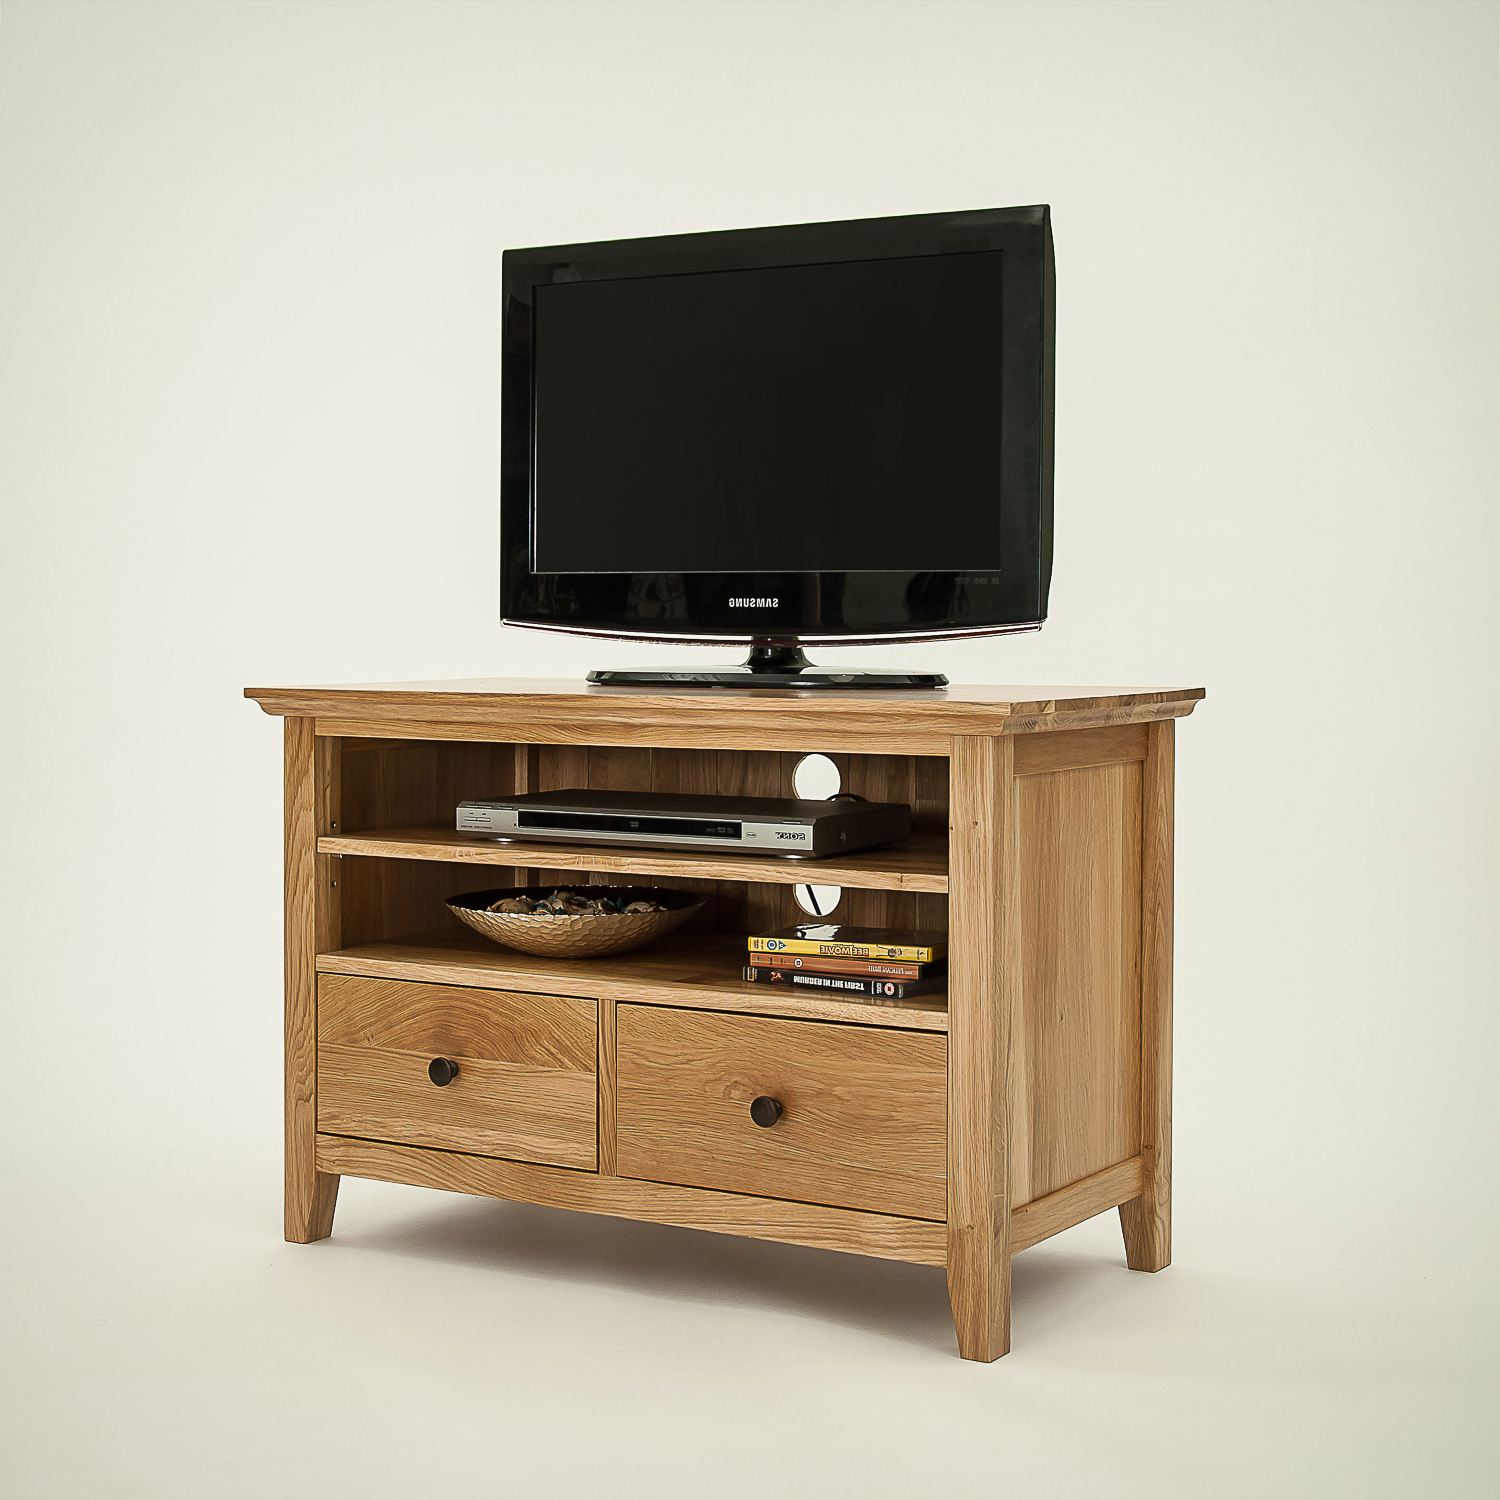 Small Oak Tv Cabinets Intended For Trendy Hereford Rustic Oak Small Tv Unit – Cw Furniture (Gallery 1 of 20)